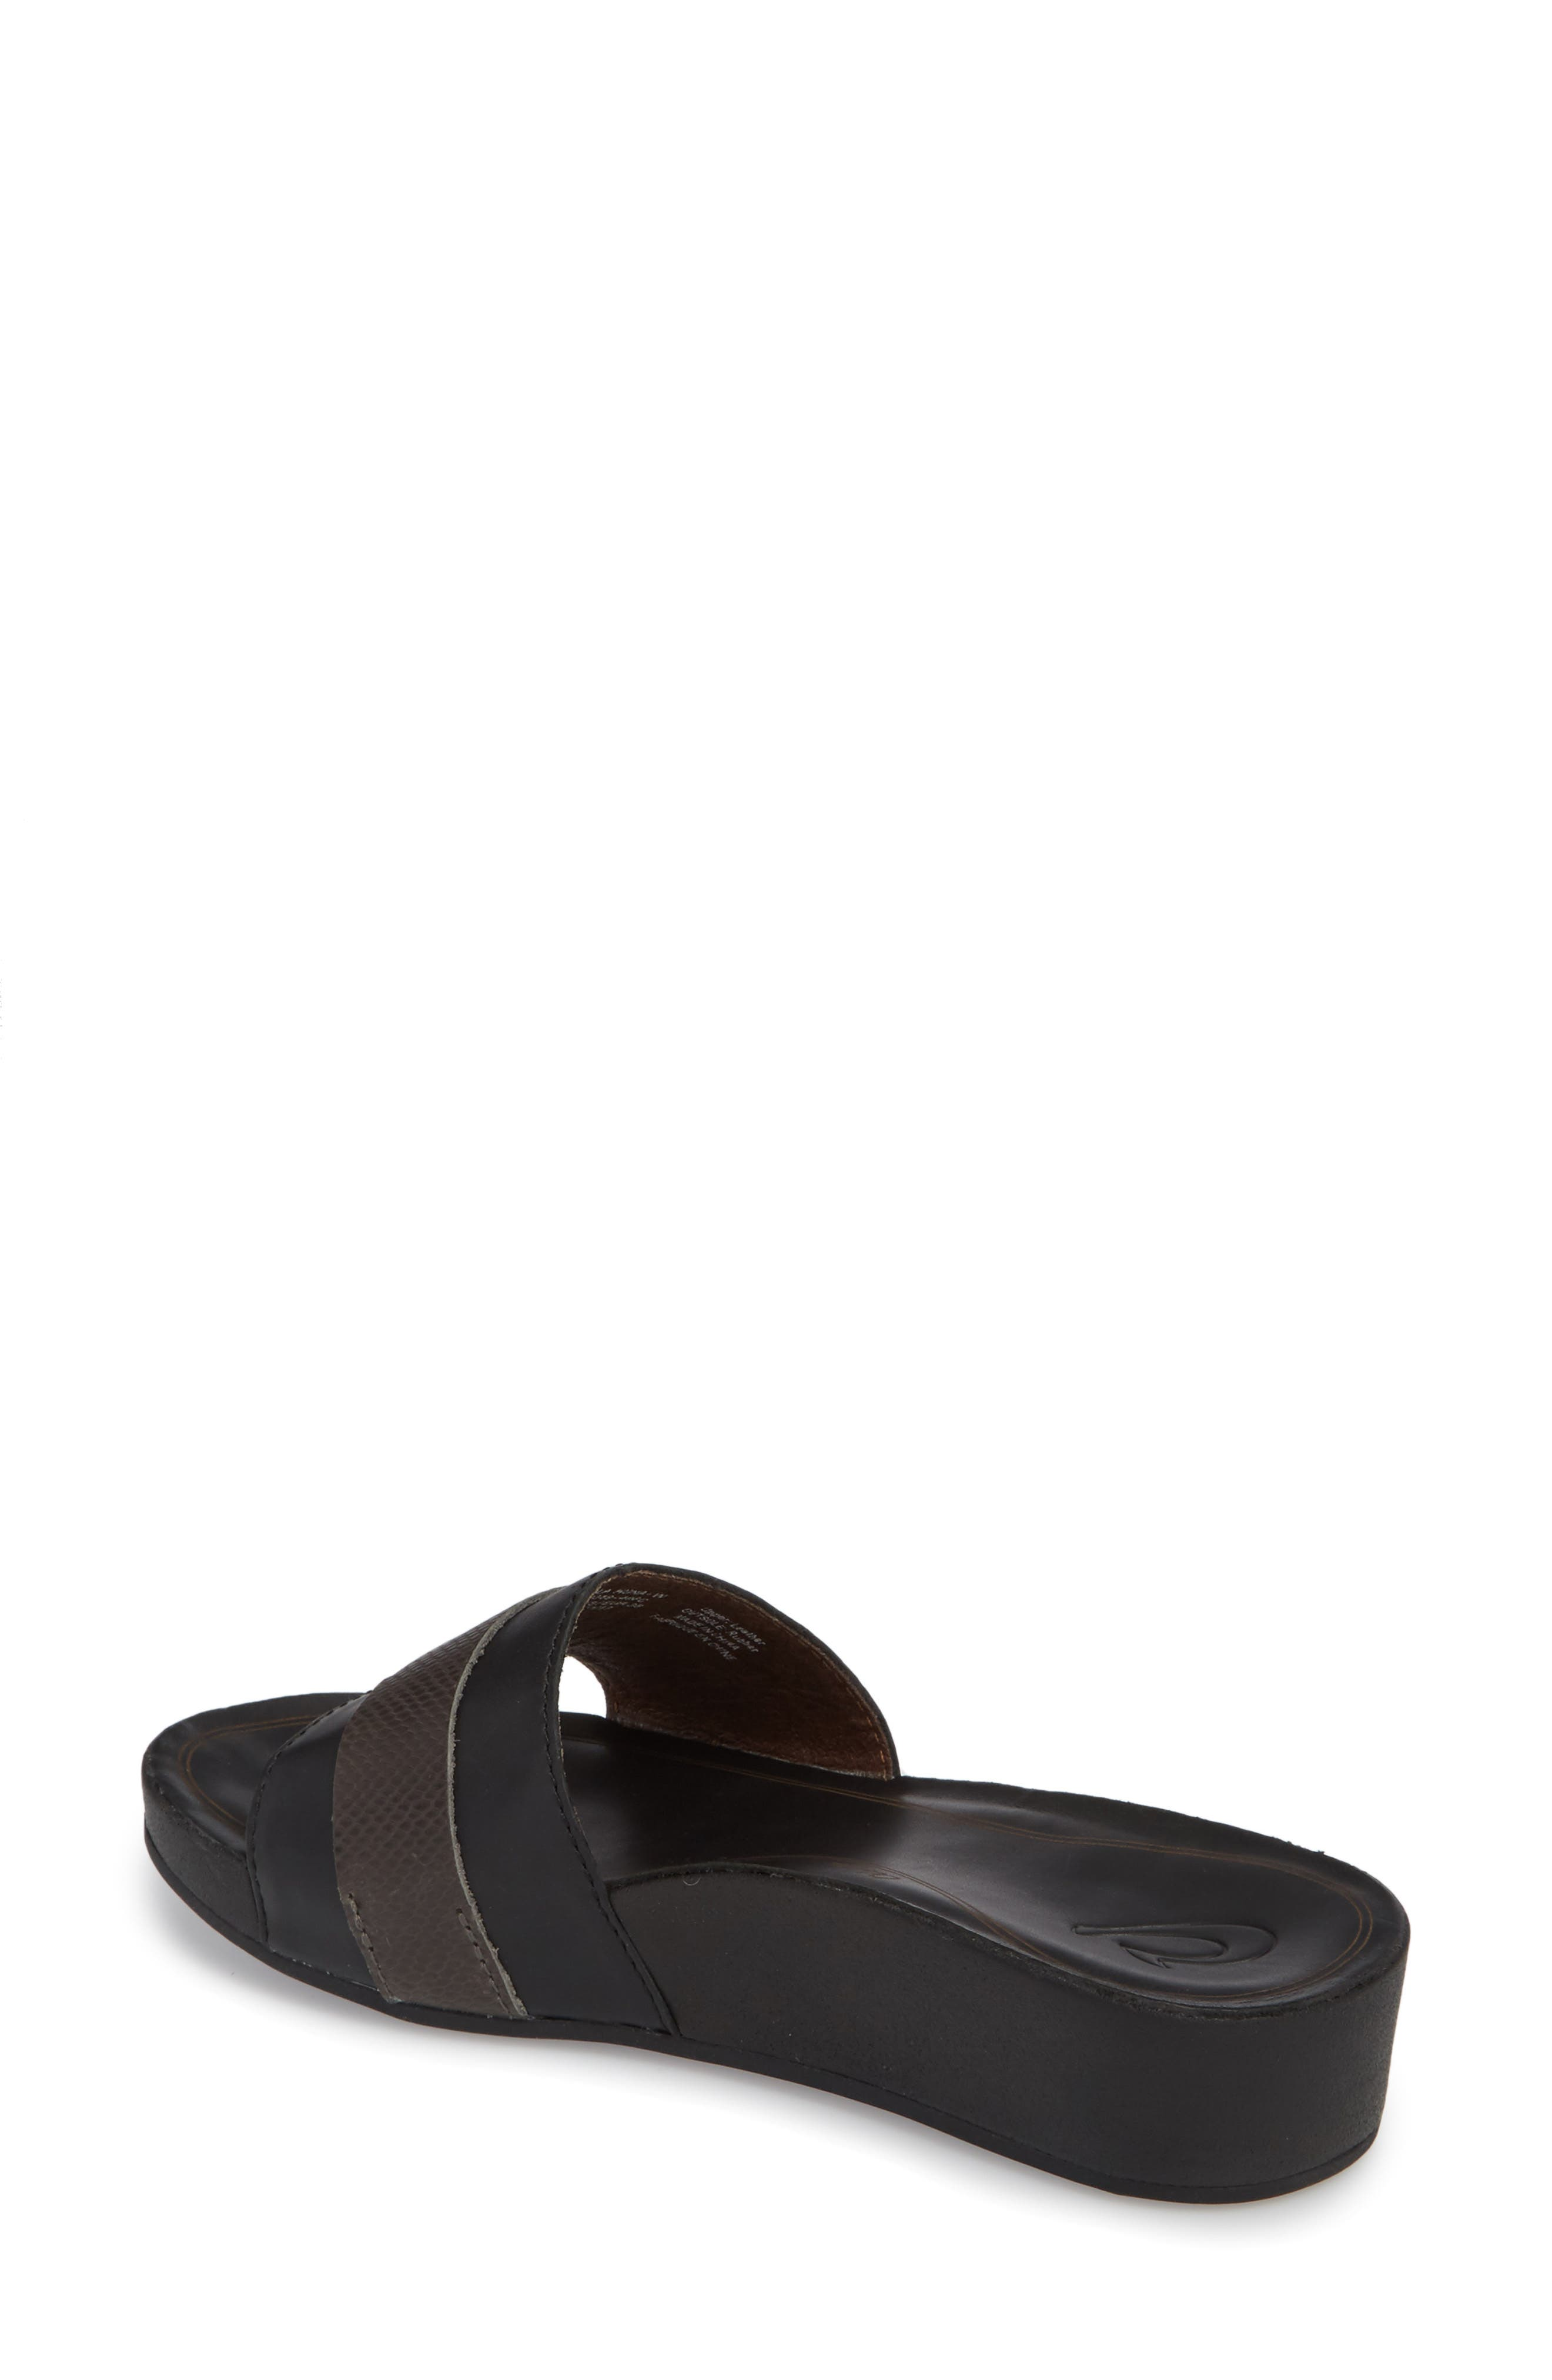 Ola Huna Wedge Sandal,                             Alternate thumbnail 2, color,                             020